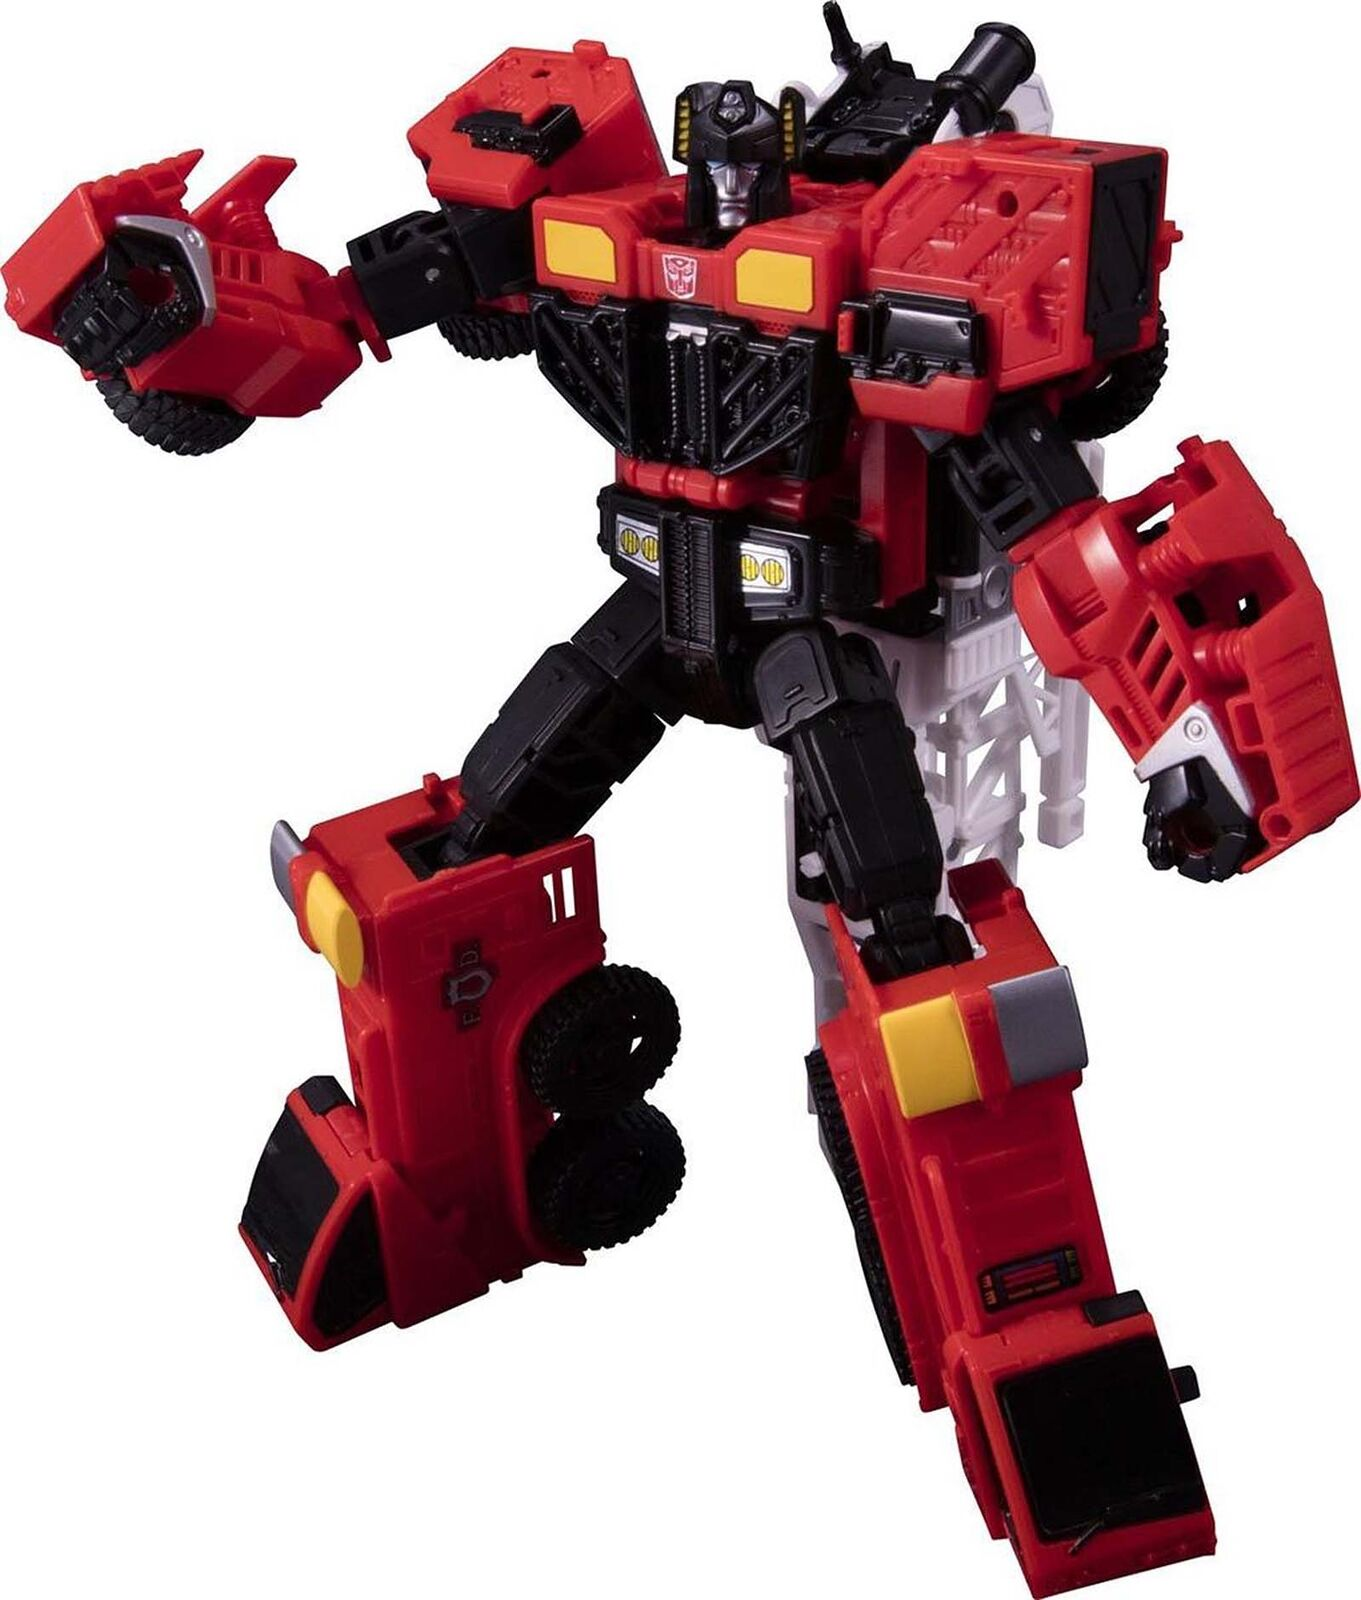 Transformers Power of the Primes V V V Class INFERNO Action Figure unopen Gift  Toy 67ca42